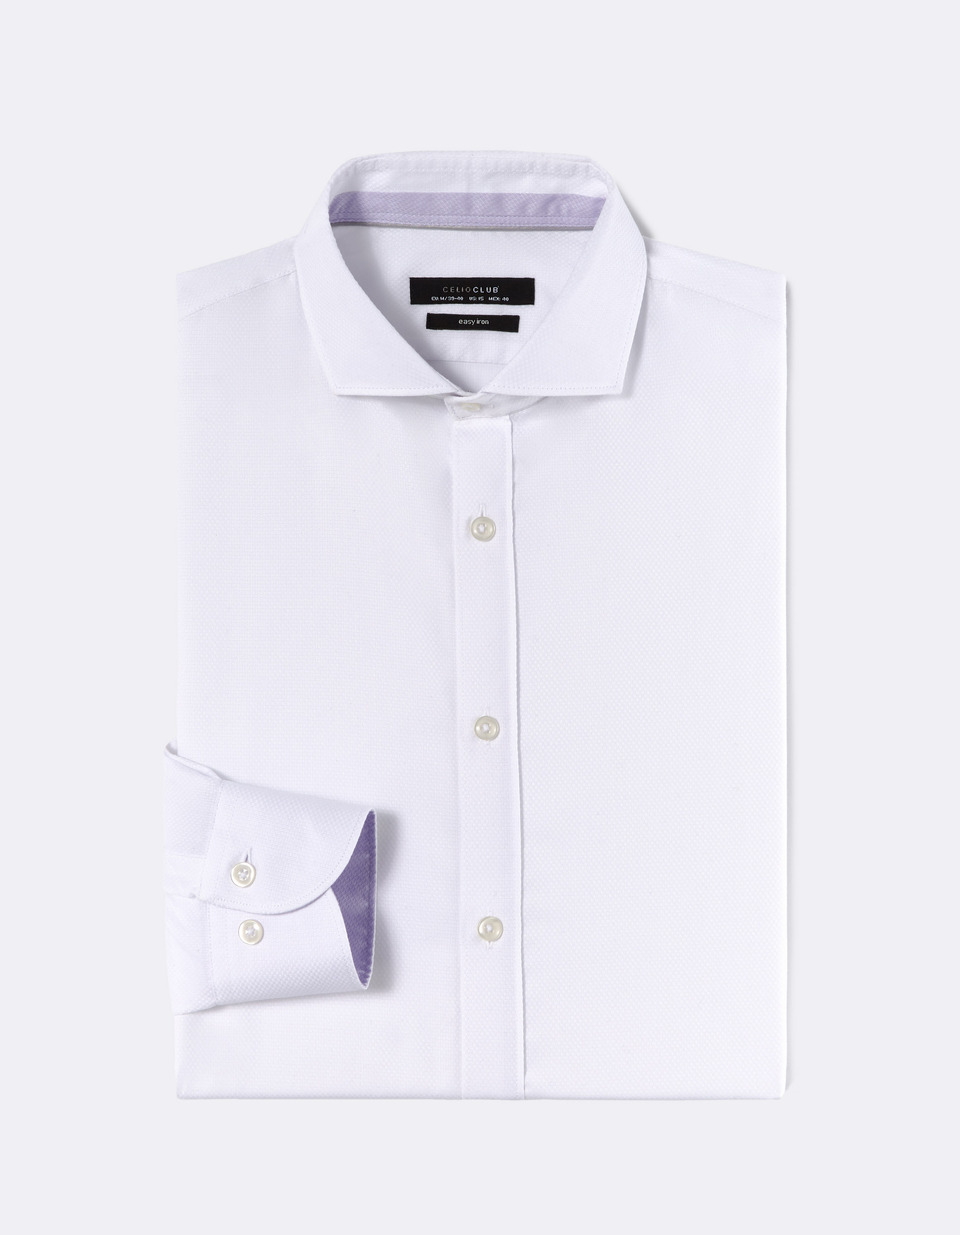 Chemise regular col cut-away 100% coton repassage facile - NATTERN_BLANC - Image à plat - Celio France